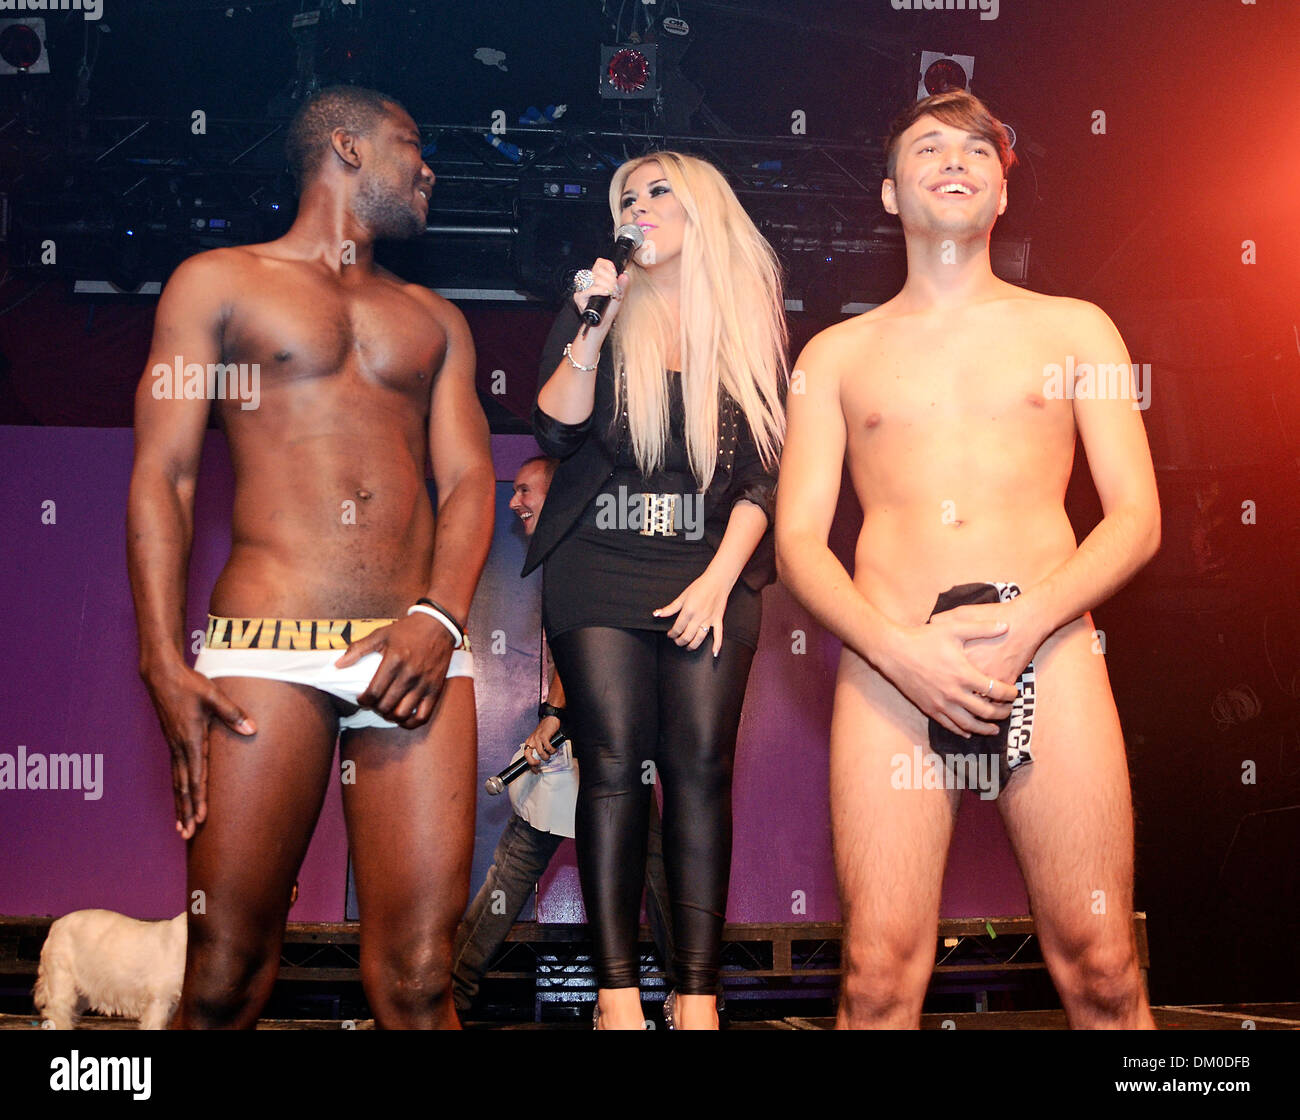 gay porn idol Jul 2015   arguably prudish BBC have banned EastEnders actor Jake Wood from judging  light-hearted event Porn Idol at iconic club G-A-Y in London.